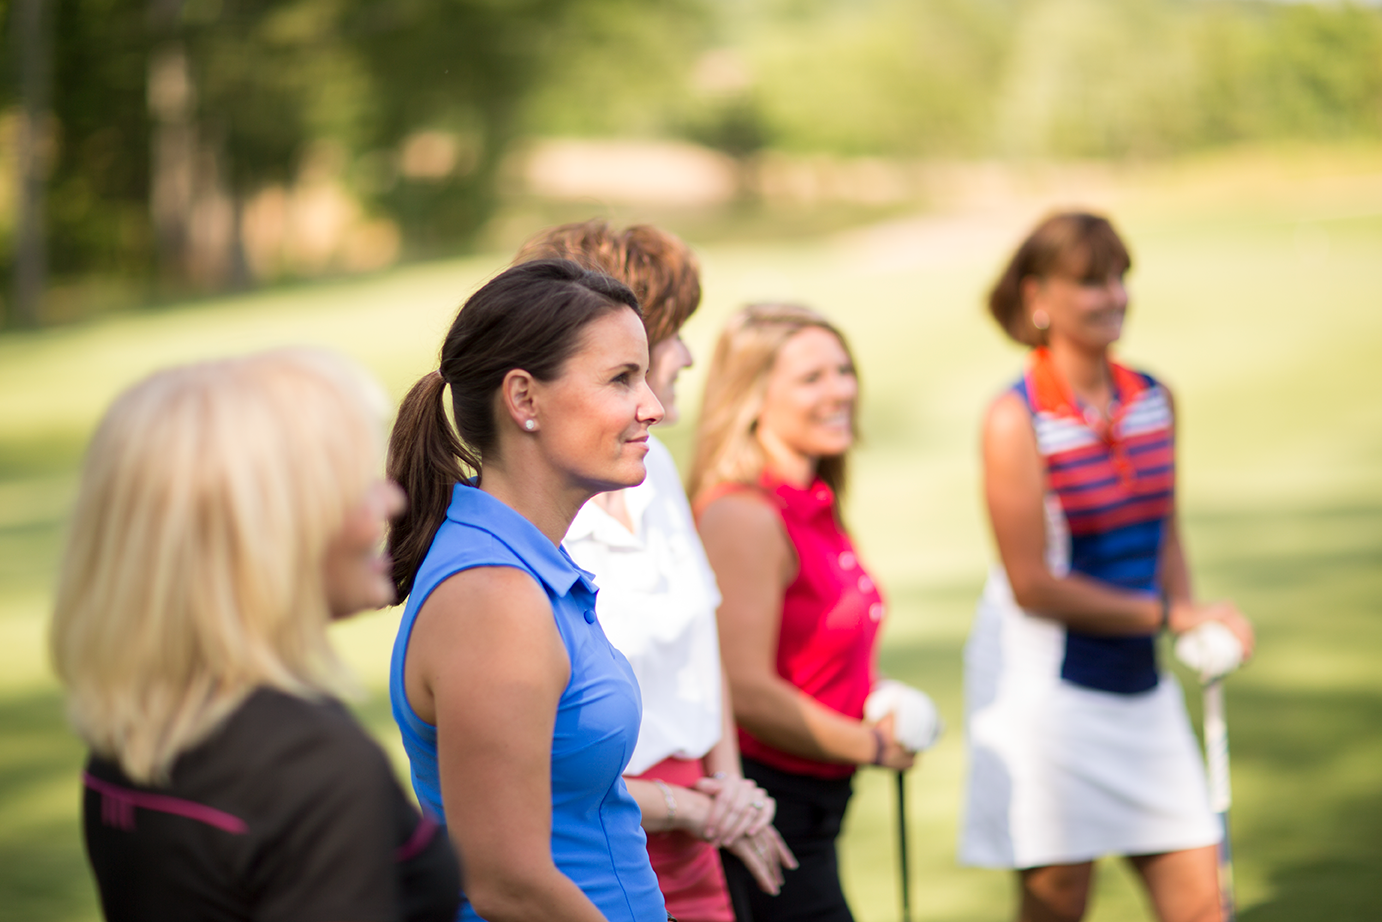 Womens golf instruction